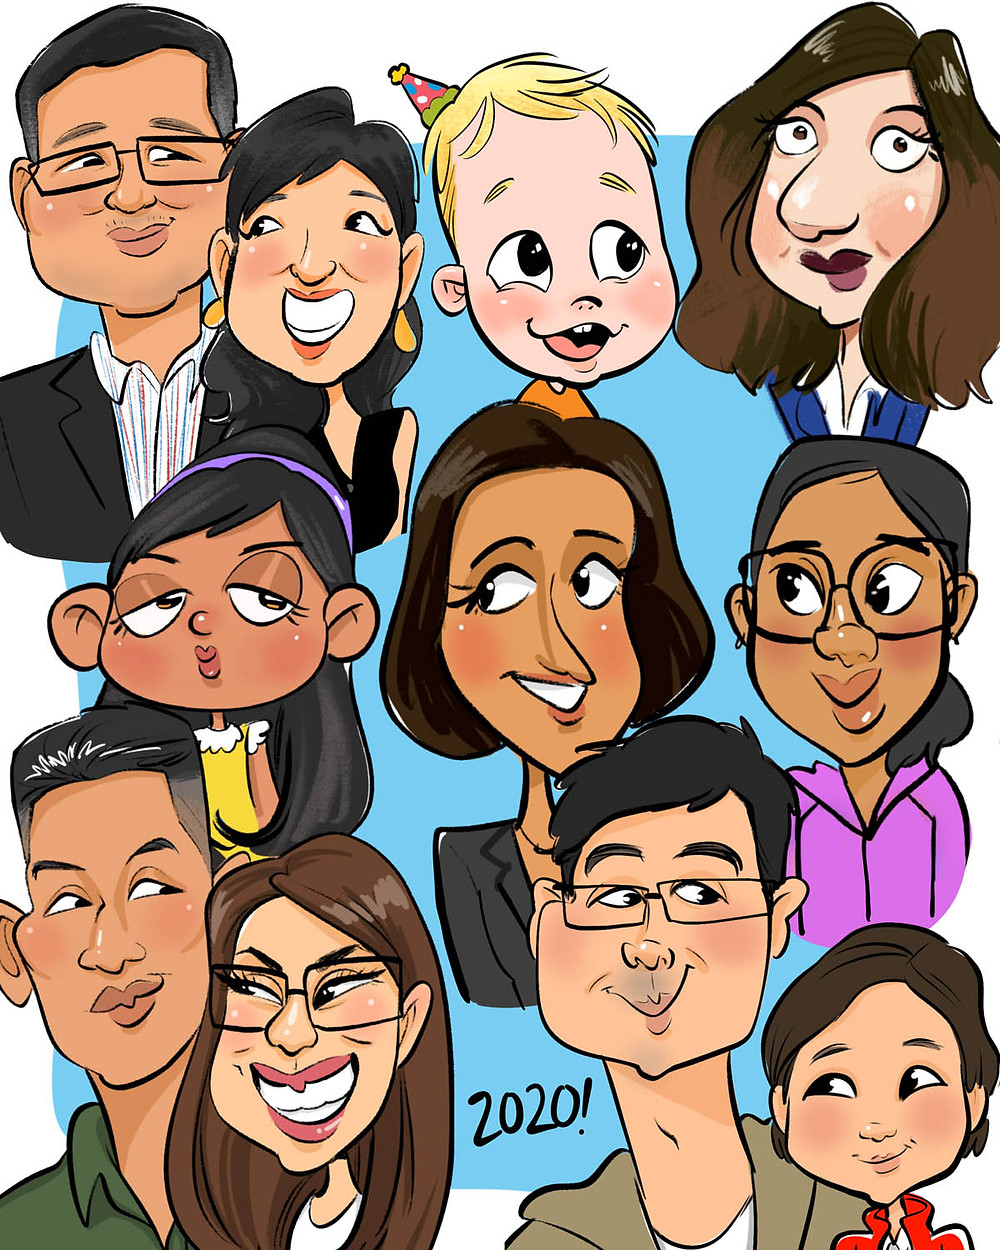 family group caricature color fun faces caricatures cartoon faces portrait art drawing funny cute photo image